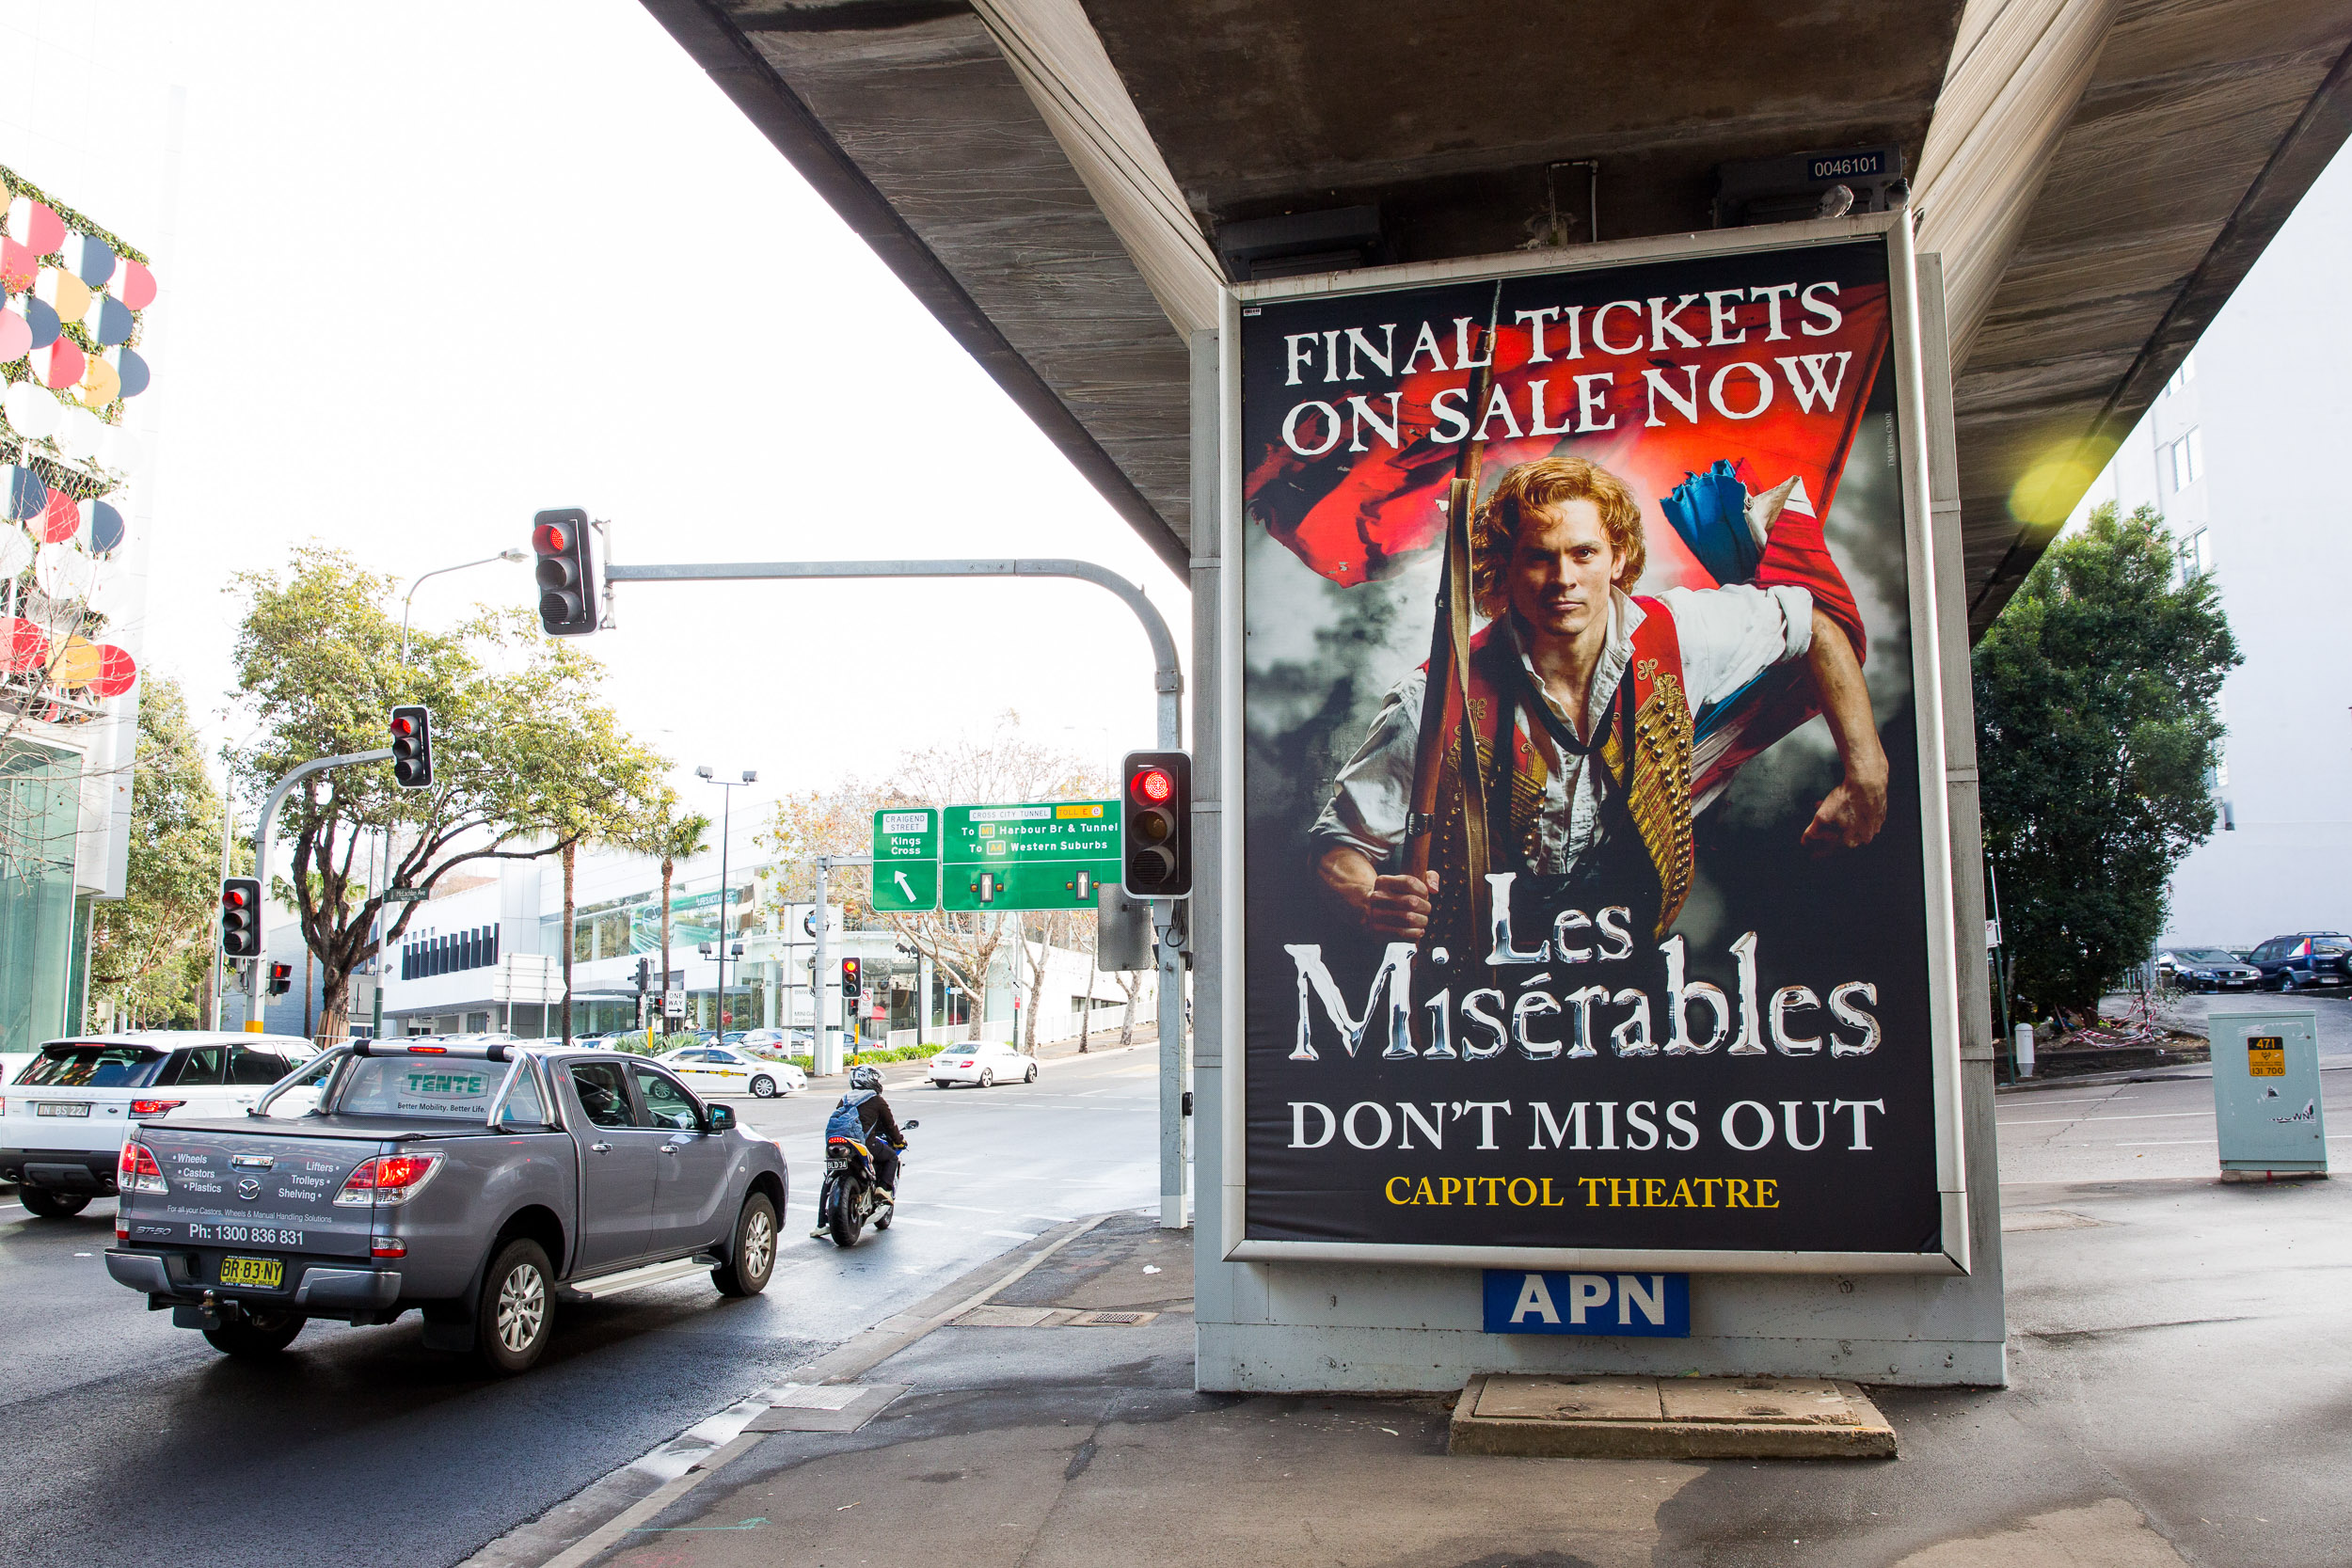 Les Miserables ad